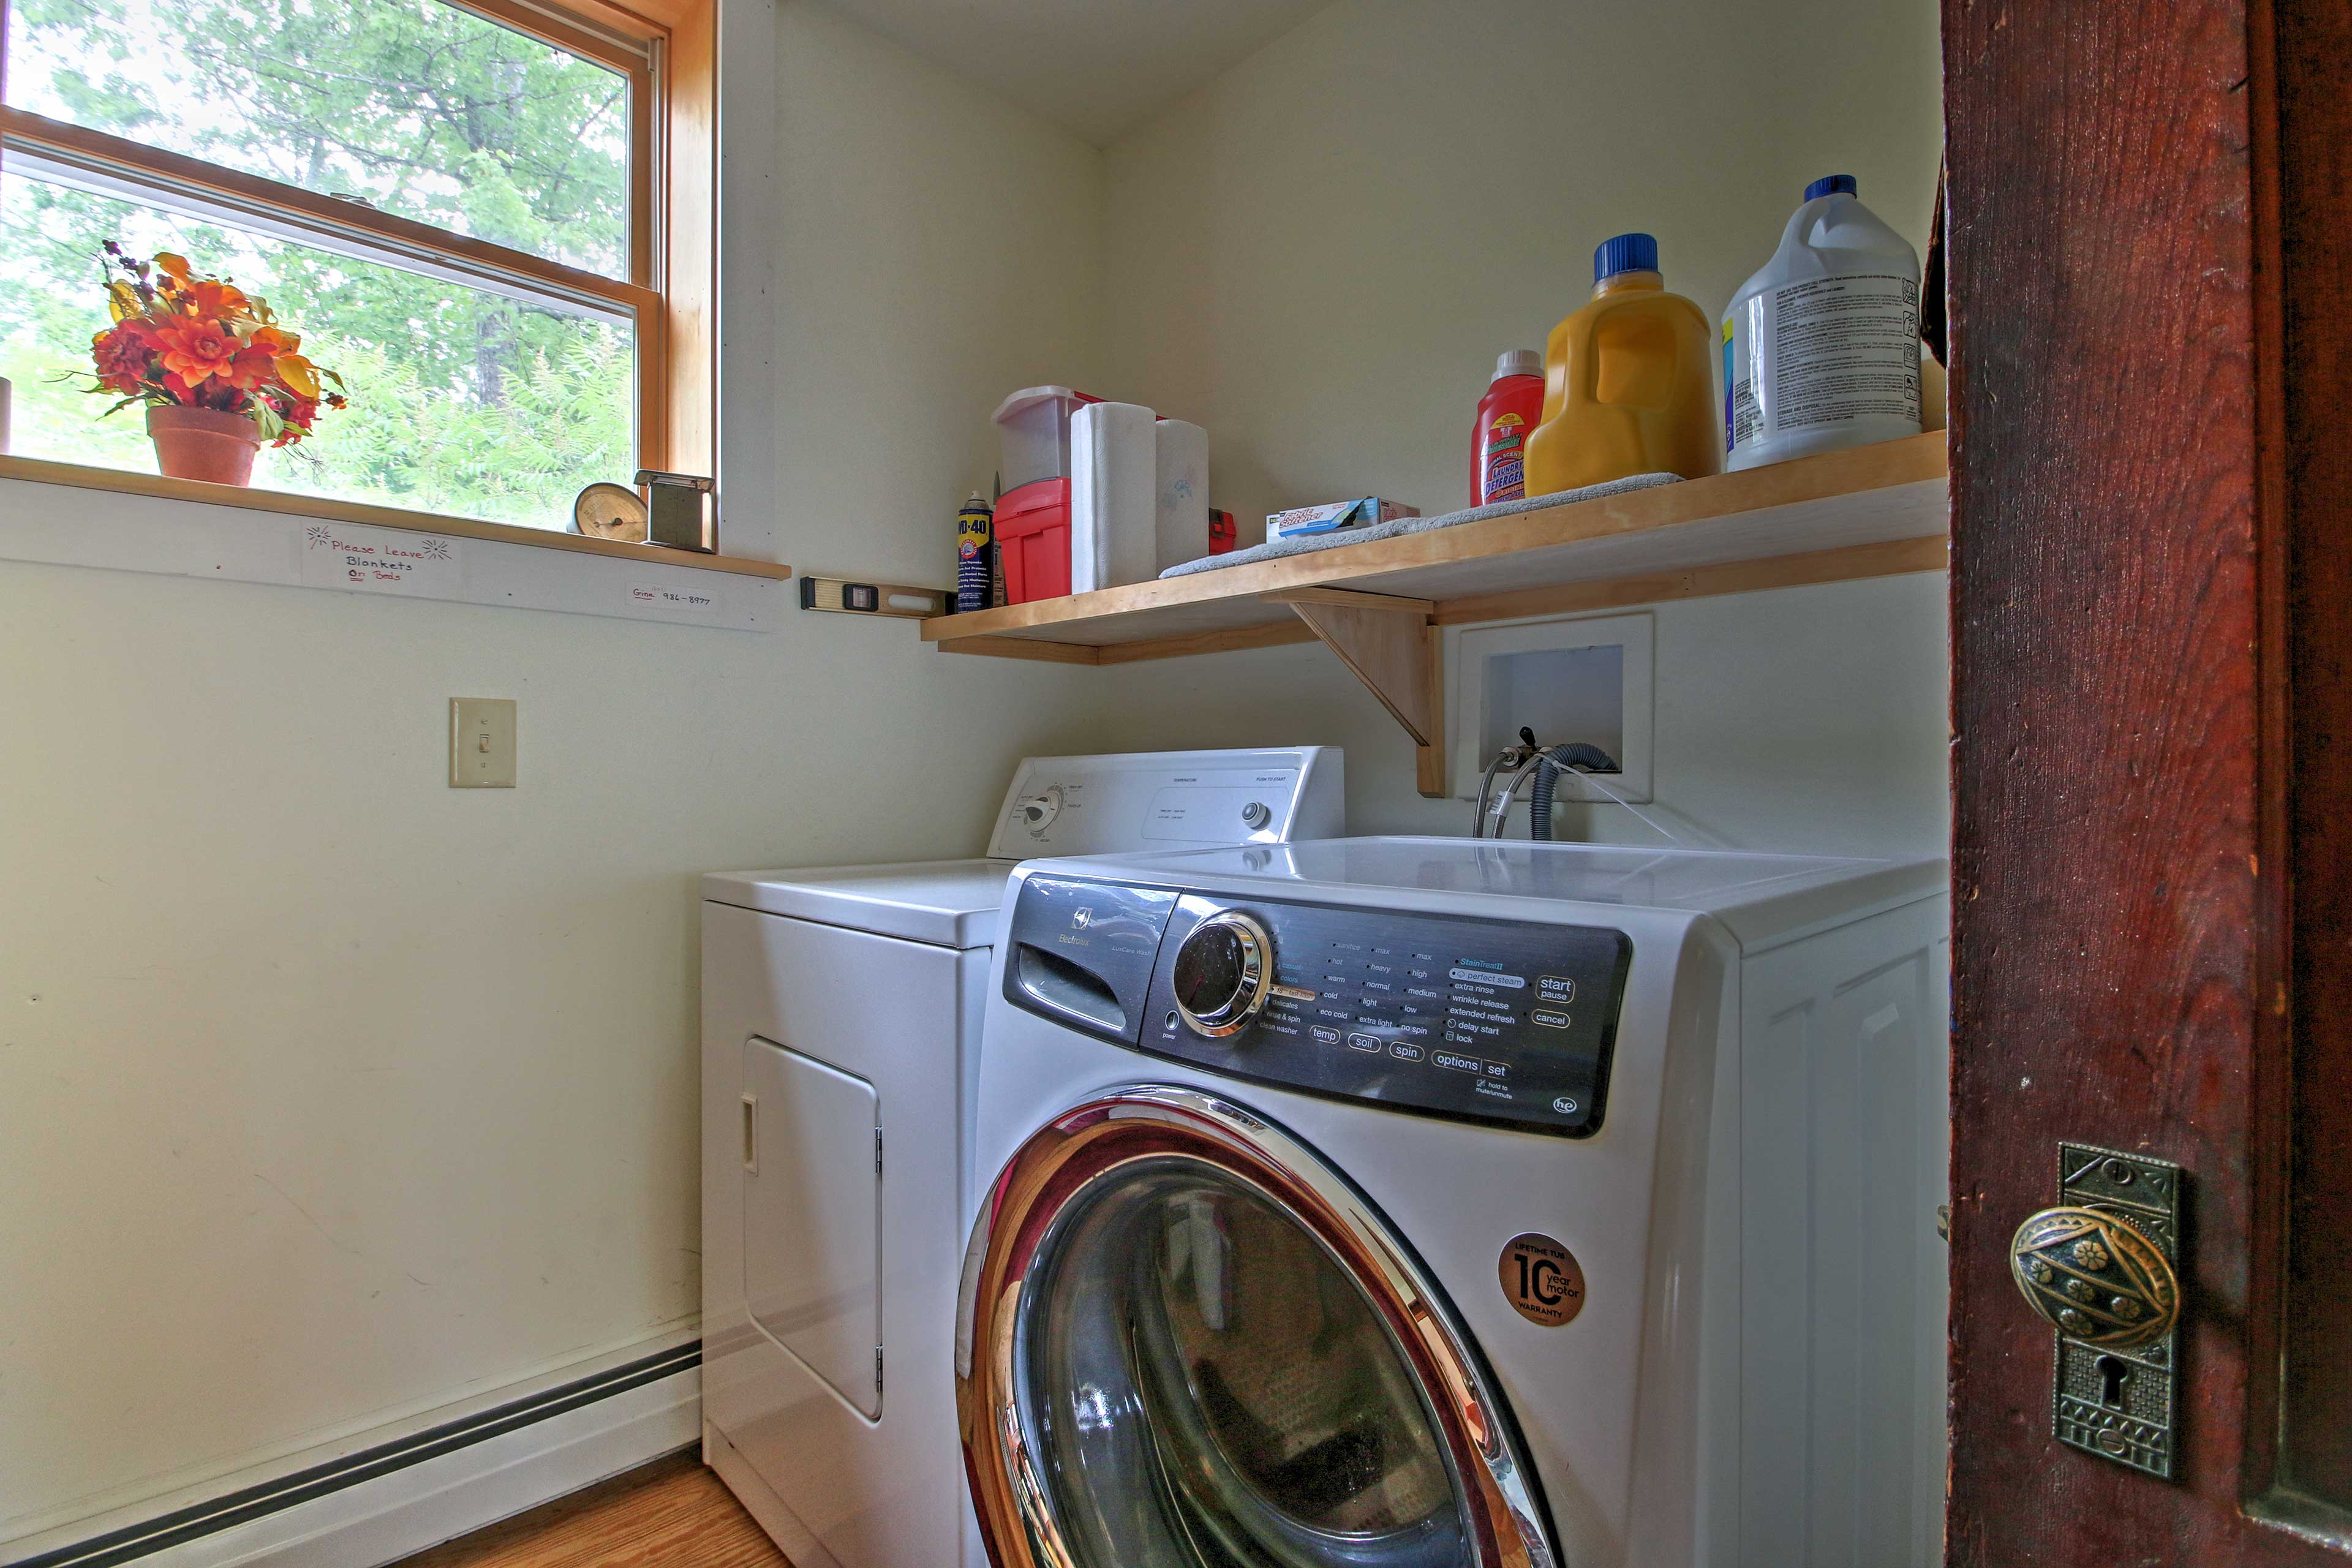 The property features all the amenities of home, including in-unit laundry machines.